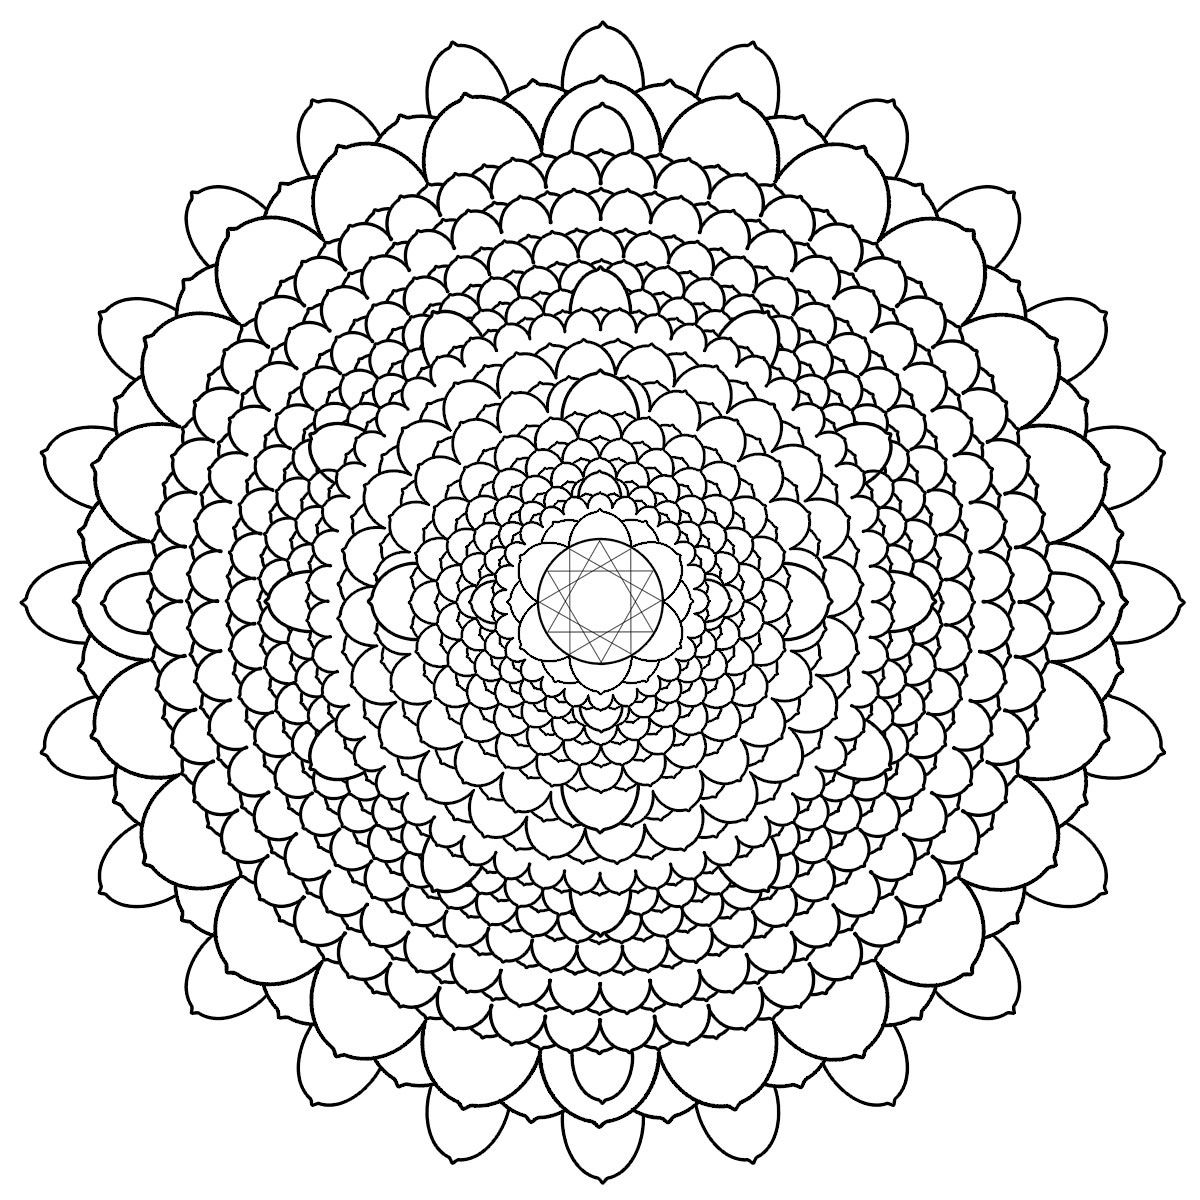 Mandala coloring pages easter - Free Printable Mandalas For Adults Difficult Mandala Coloring Pages